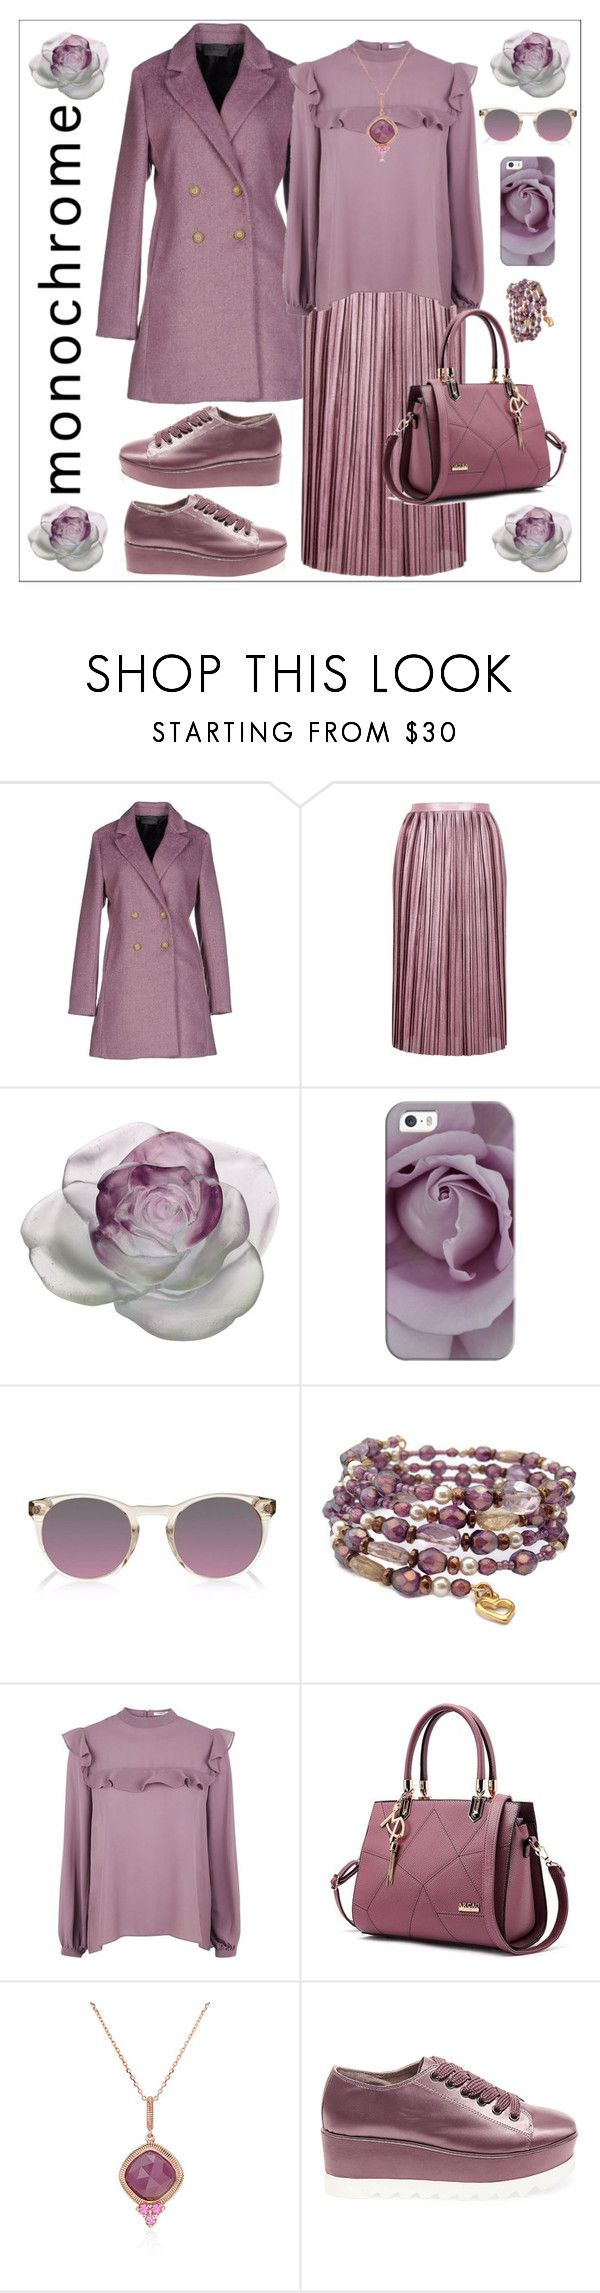 """One Color, Head to Toe"" by rossie-rz ❤ liked on Polyvore featuring Sarah Jackson, Topshop, Daum, Casetify, Finlay & Co., Glamorous, Steve Madden and monochrome"